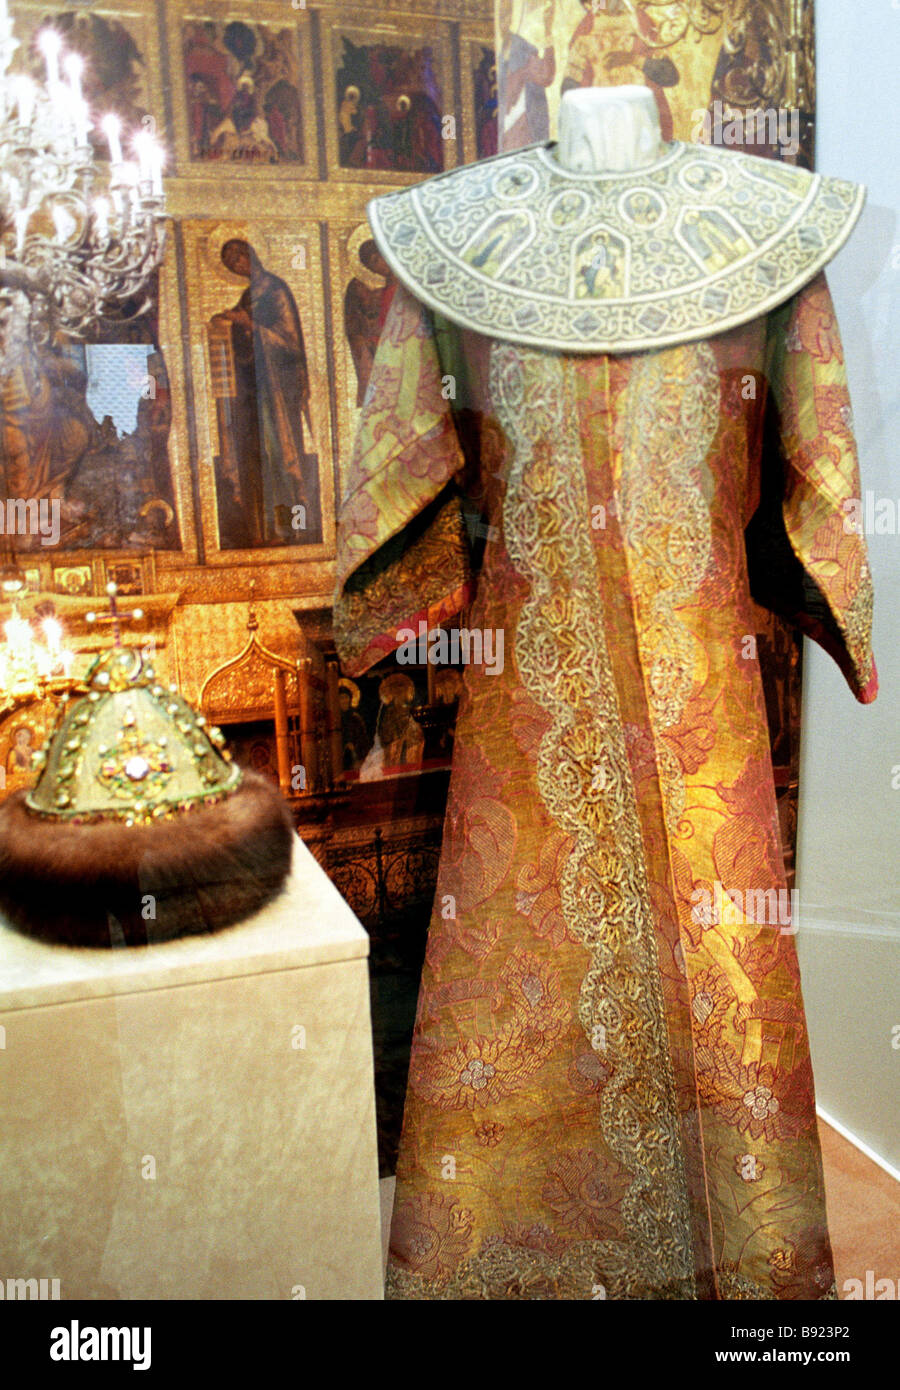 Formal attire of Russian Tsars made of unique XVI XVII century Italian textile on display at Italy and the Moscow - Stock Image